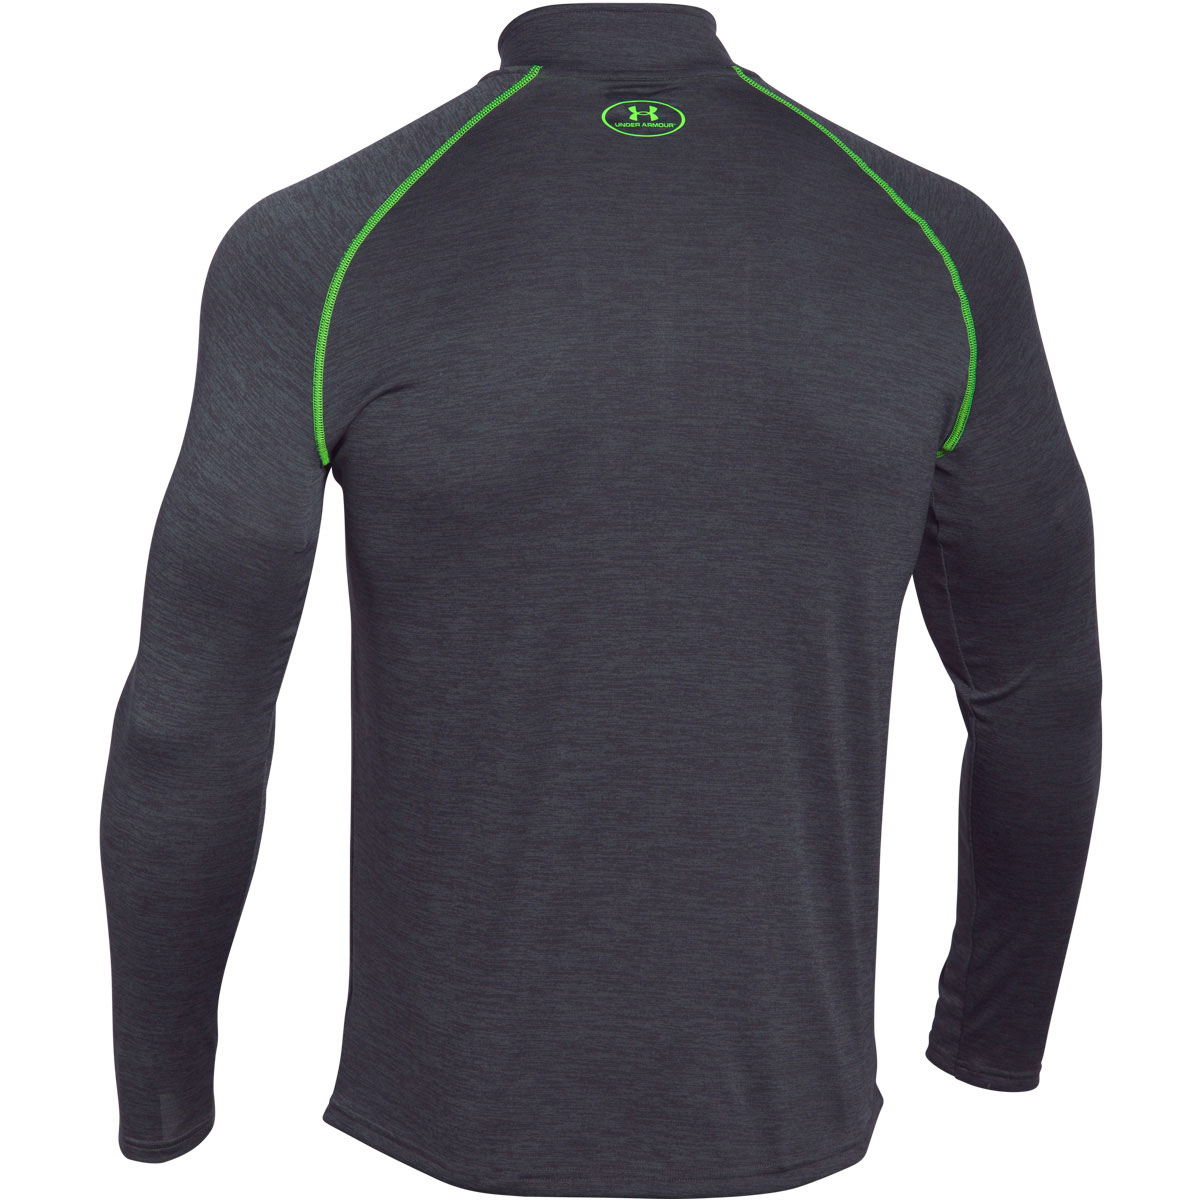 Under-Armour-Mens-UA-Tech-1-4-Zip-Long-Sleeve-Top-Workout-Layer-27-OFF-RRP thumbnail 80